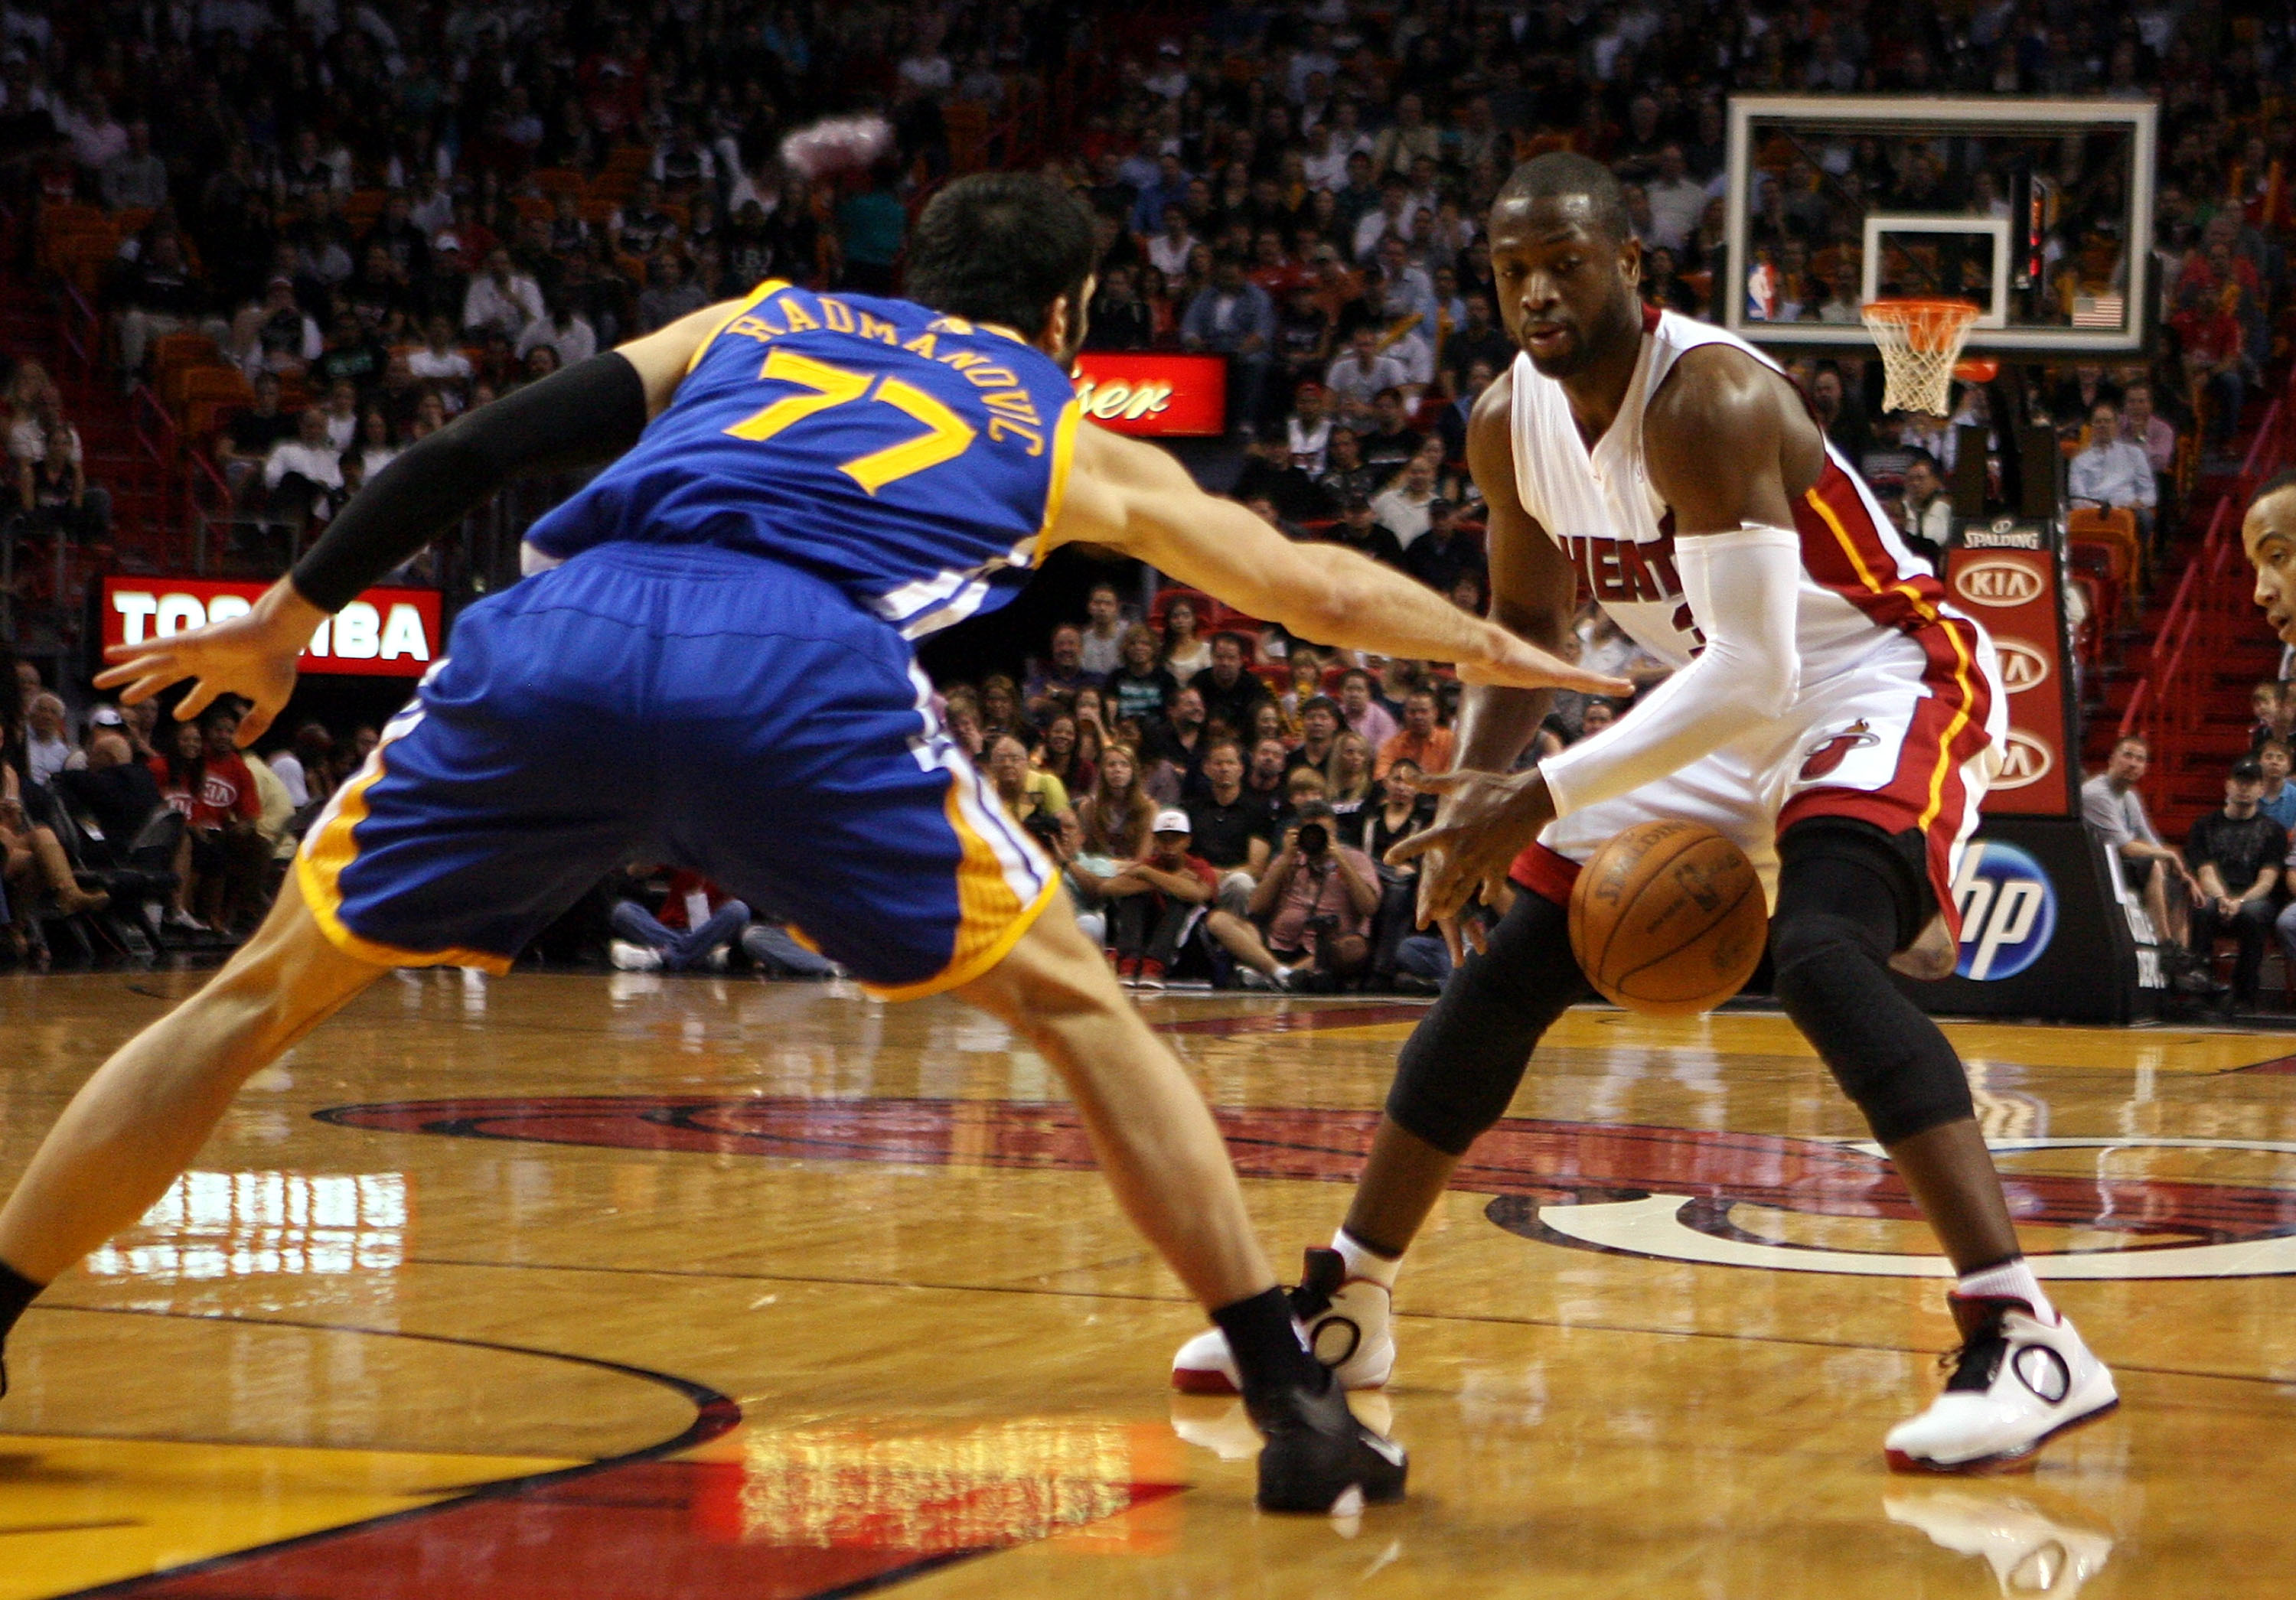 MIAMI, FL - JANUARY 01:  Guard Dwyane Wade #3 of the Miami Heat is fouled by forward Vladimir Radmanovic #77 of the Golden State Warriors at American Airlines Arena on January 1, 2011 in Miami, Florida.  NOTE TO USER: User expressly acknowledges and agree